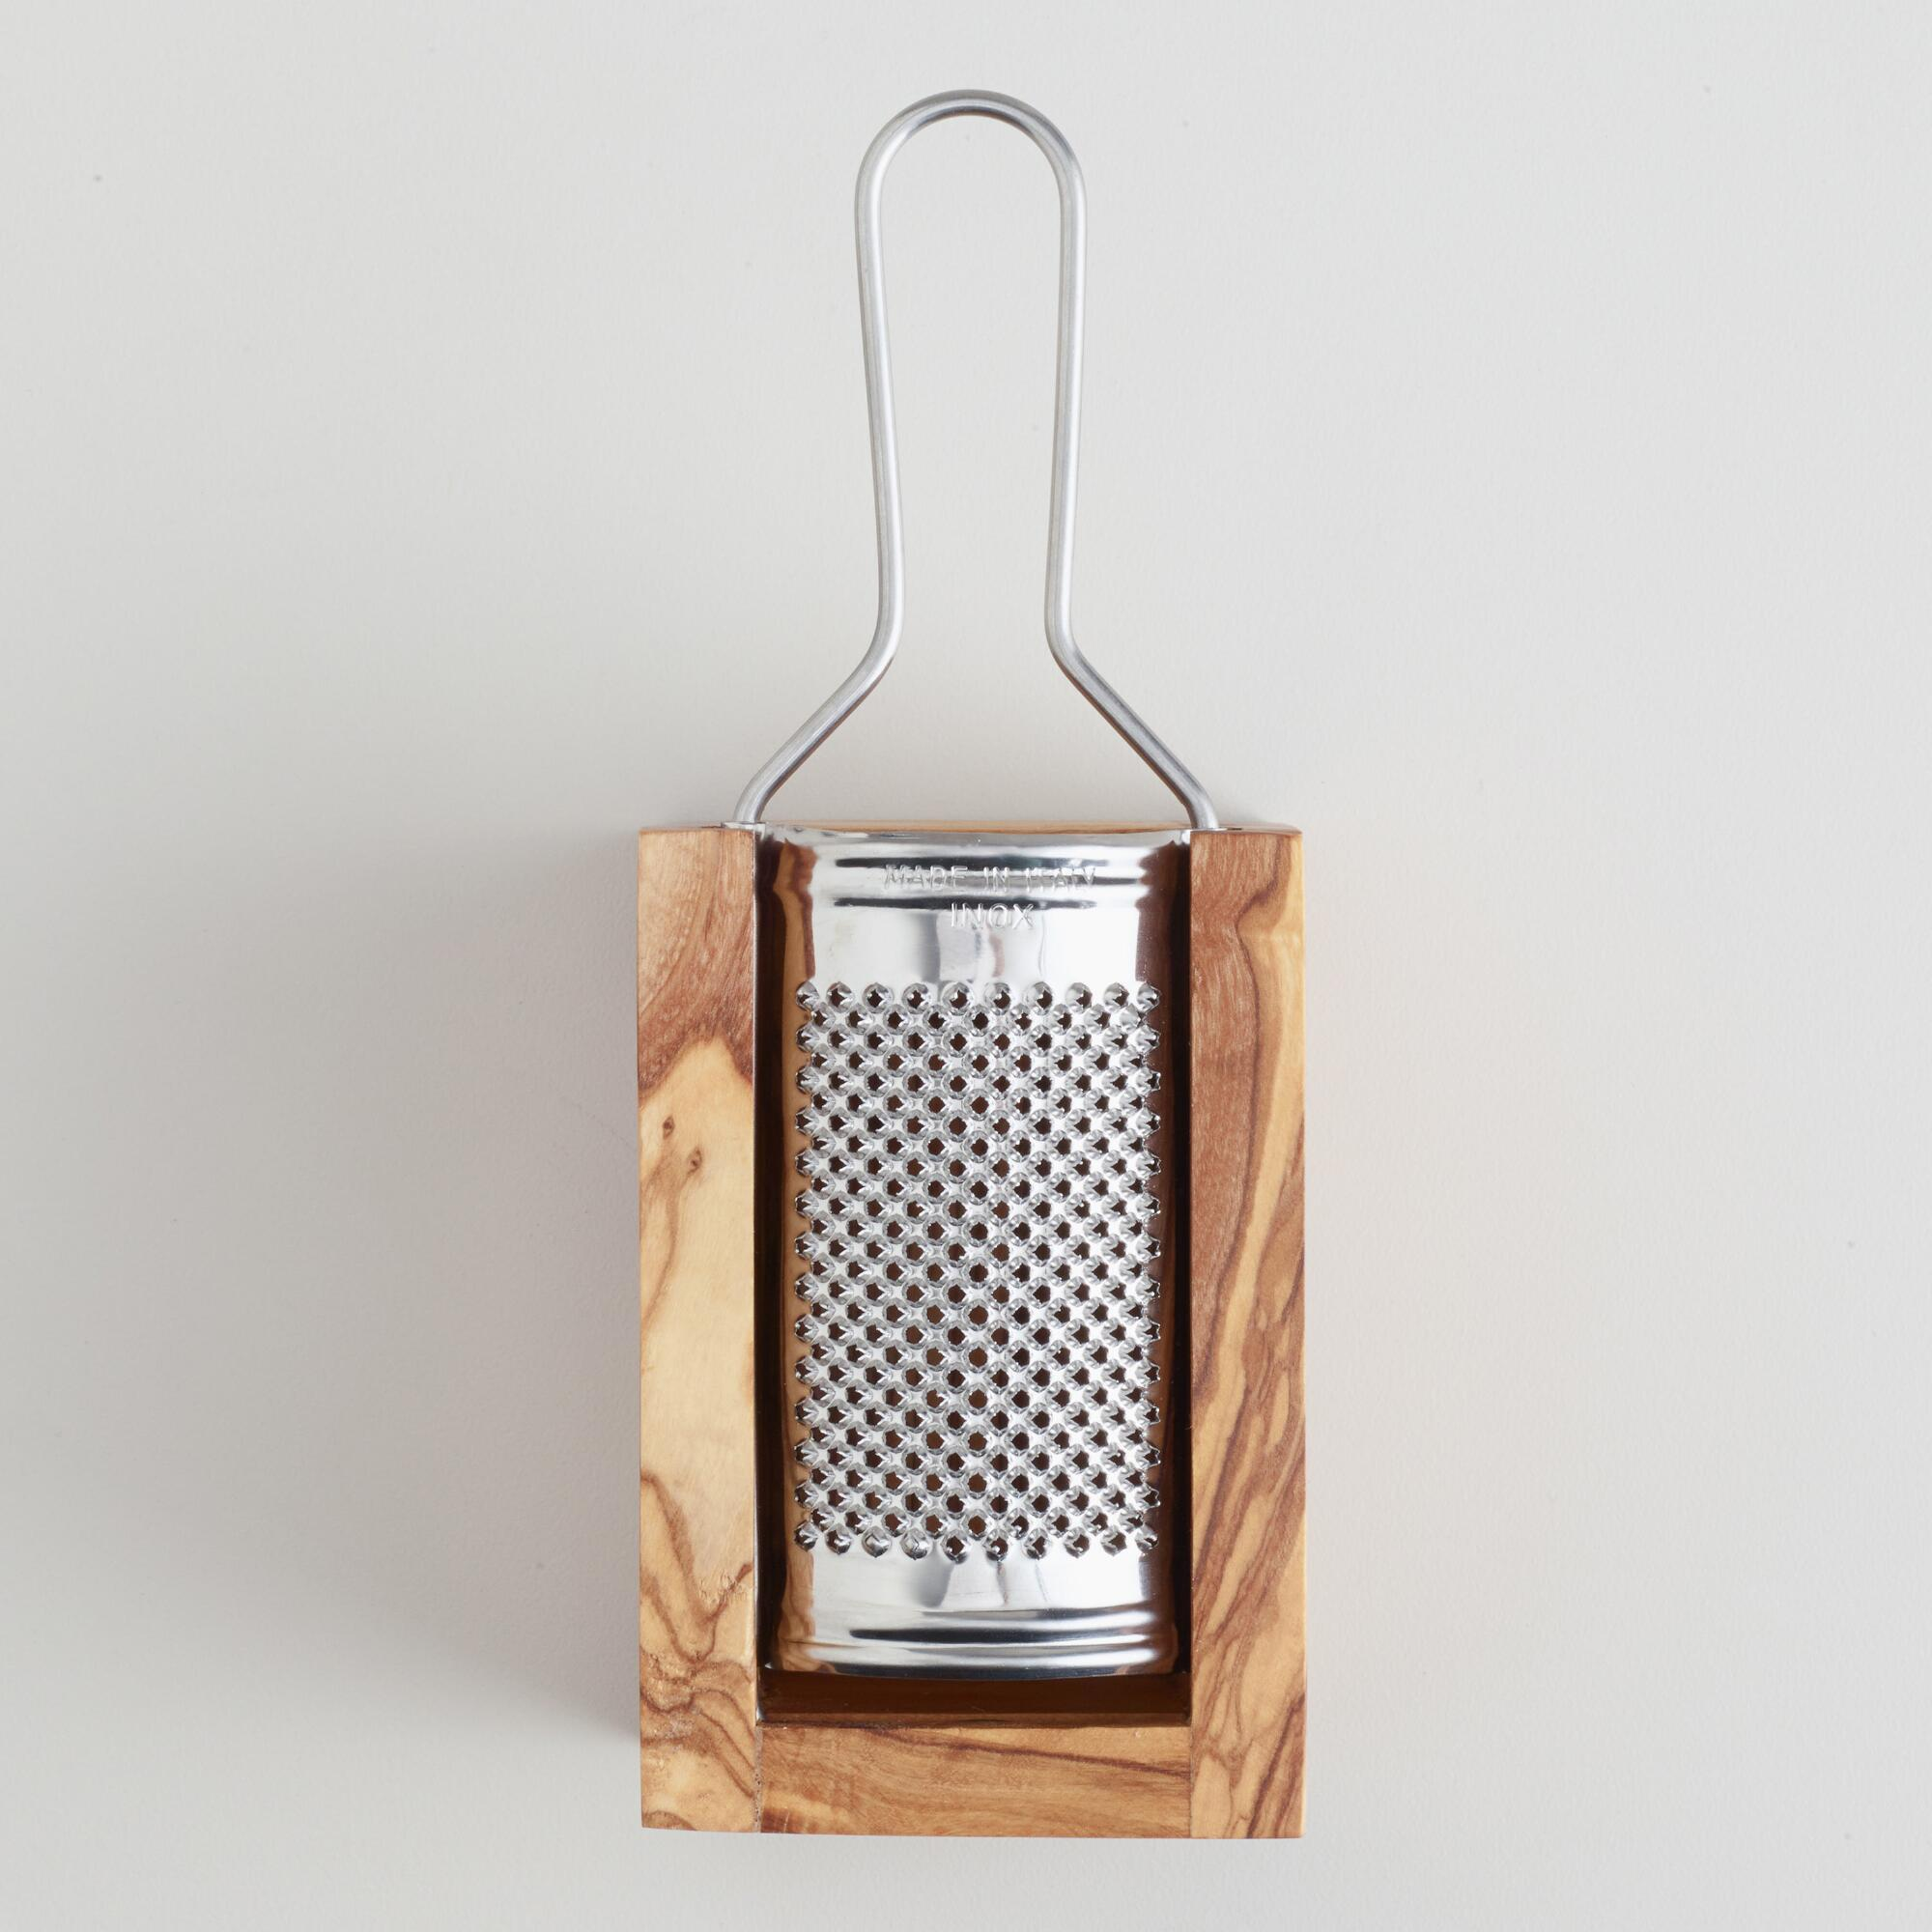 World Market Olivewood Cheese Grater